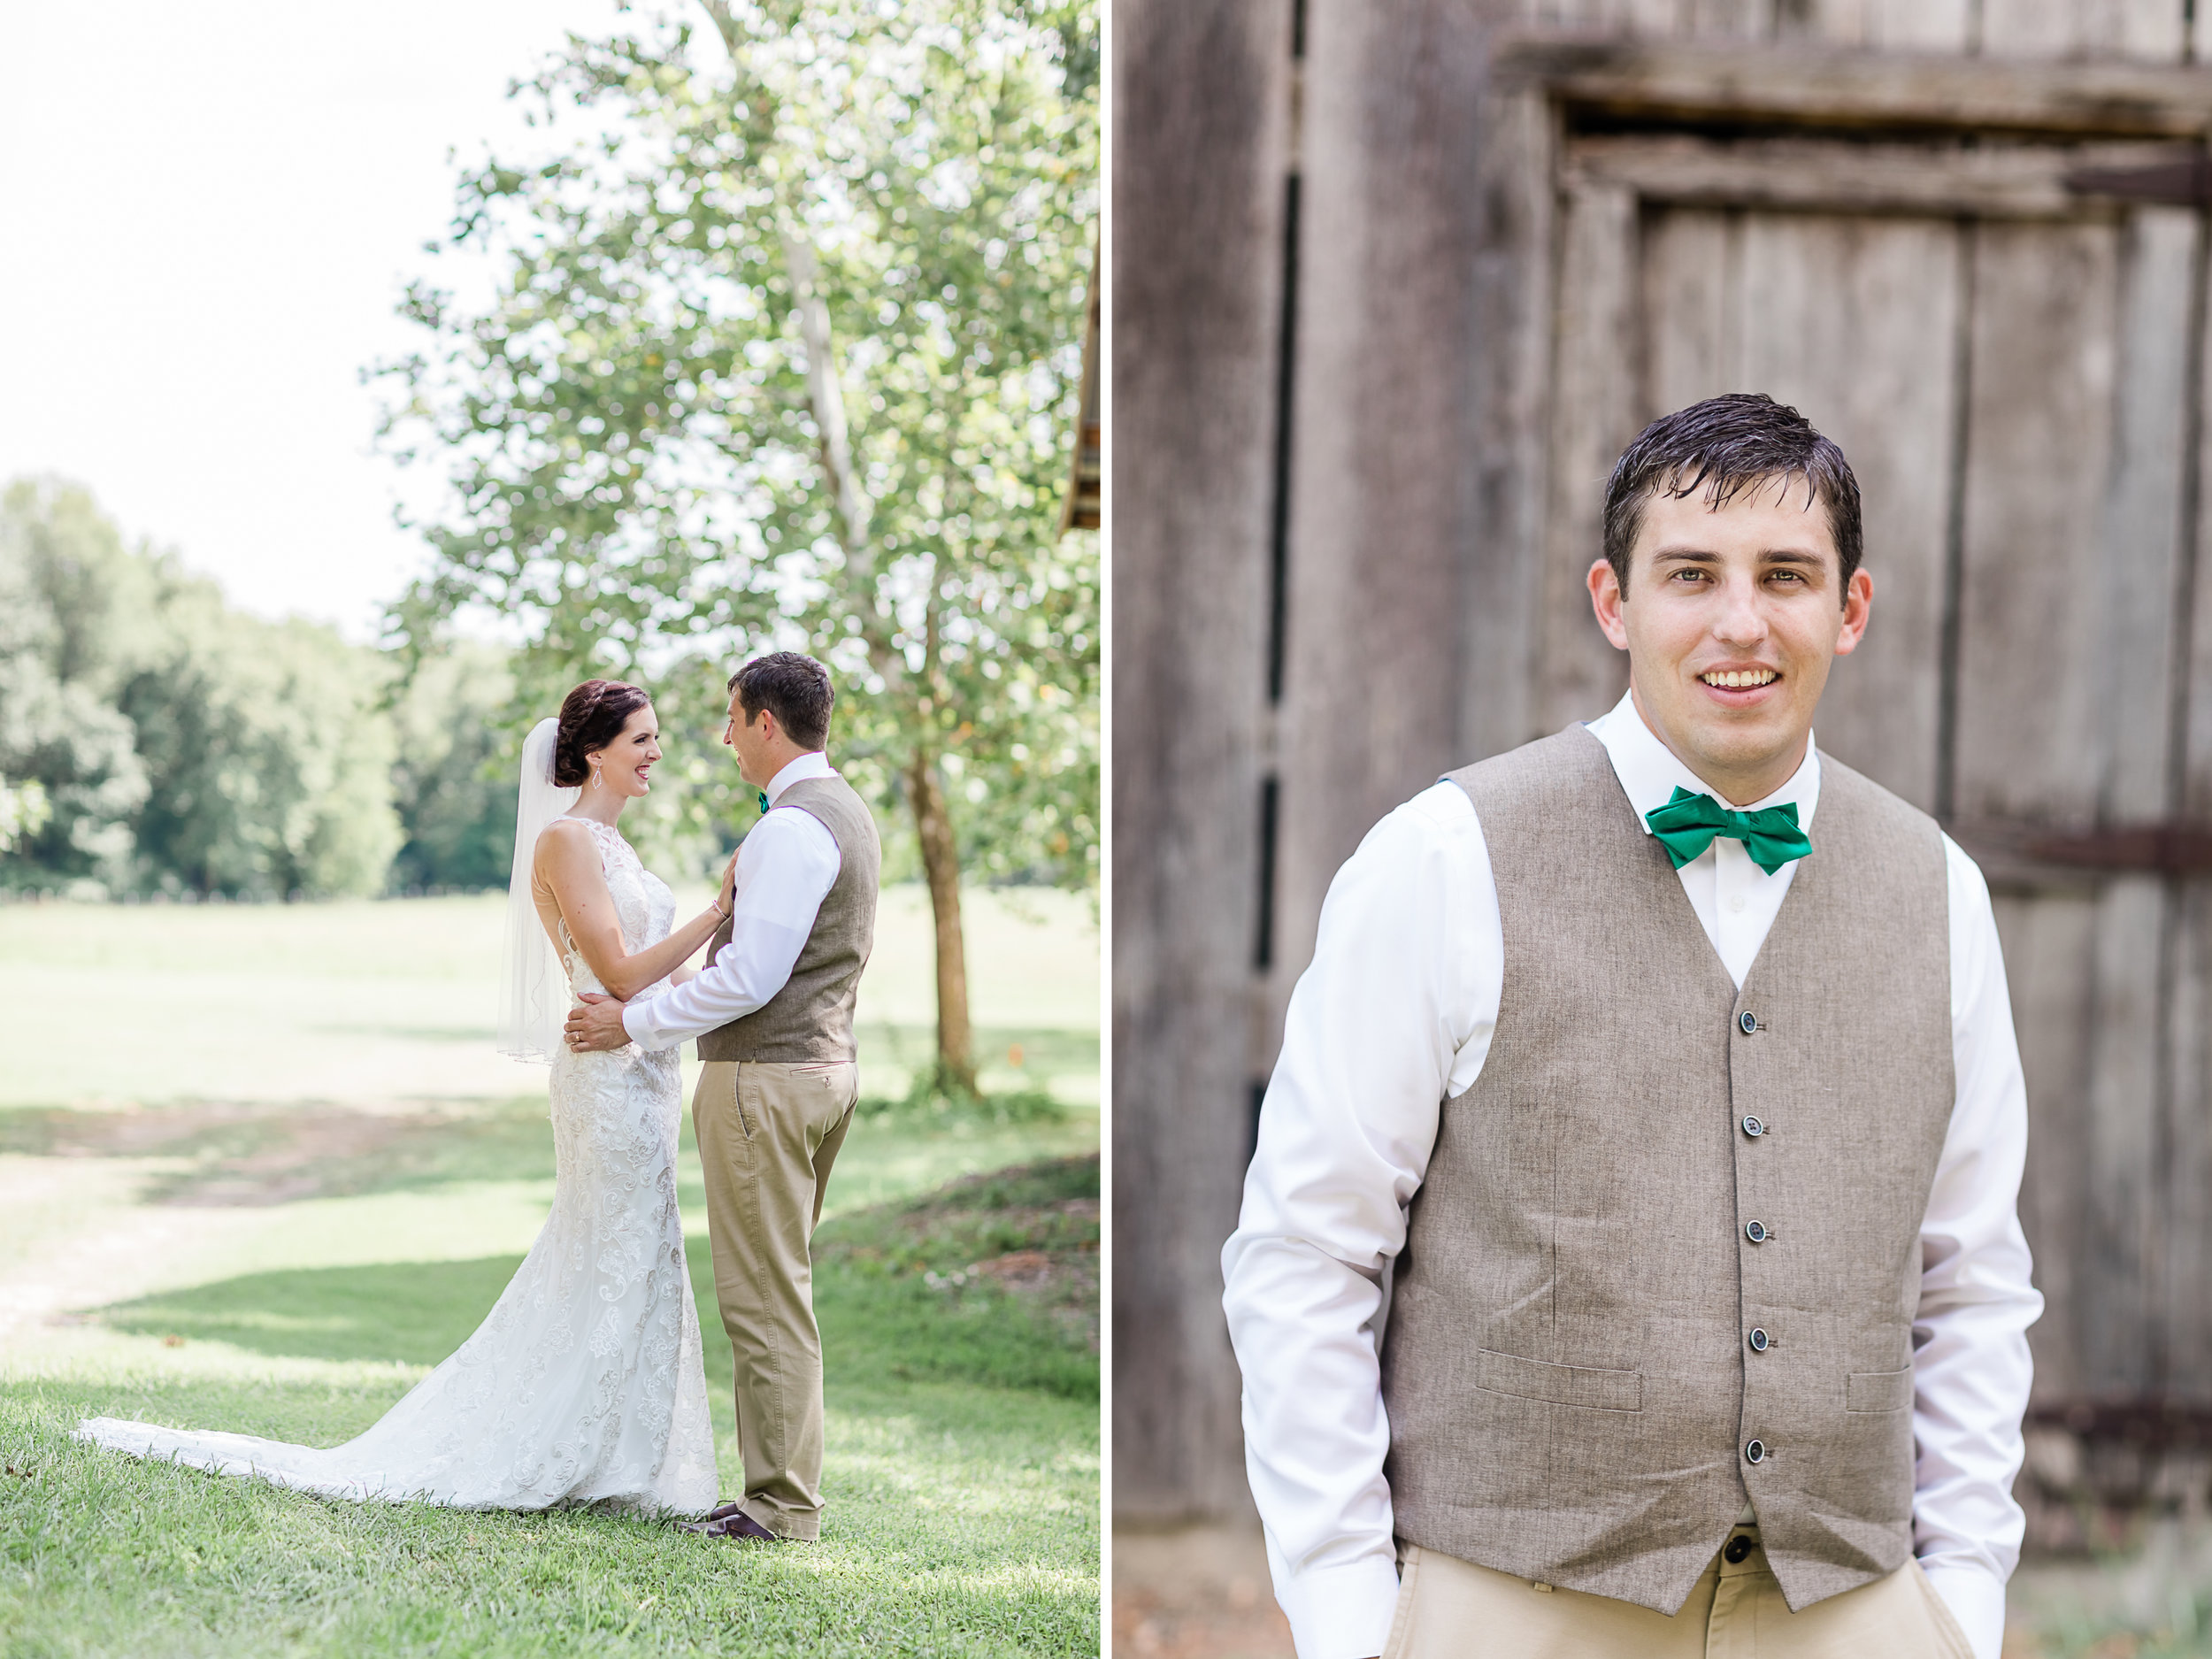 Northwest Arkansas Wedding Photographer 9.jpg